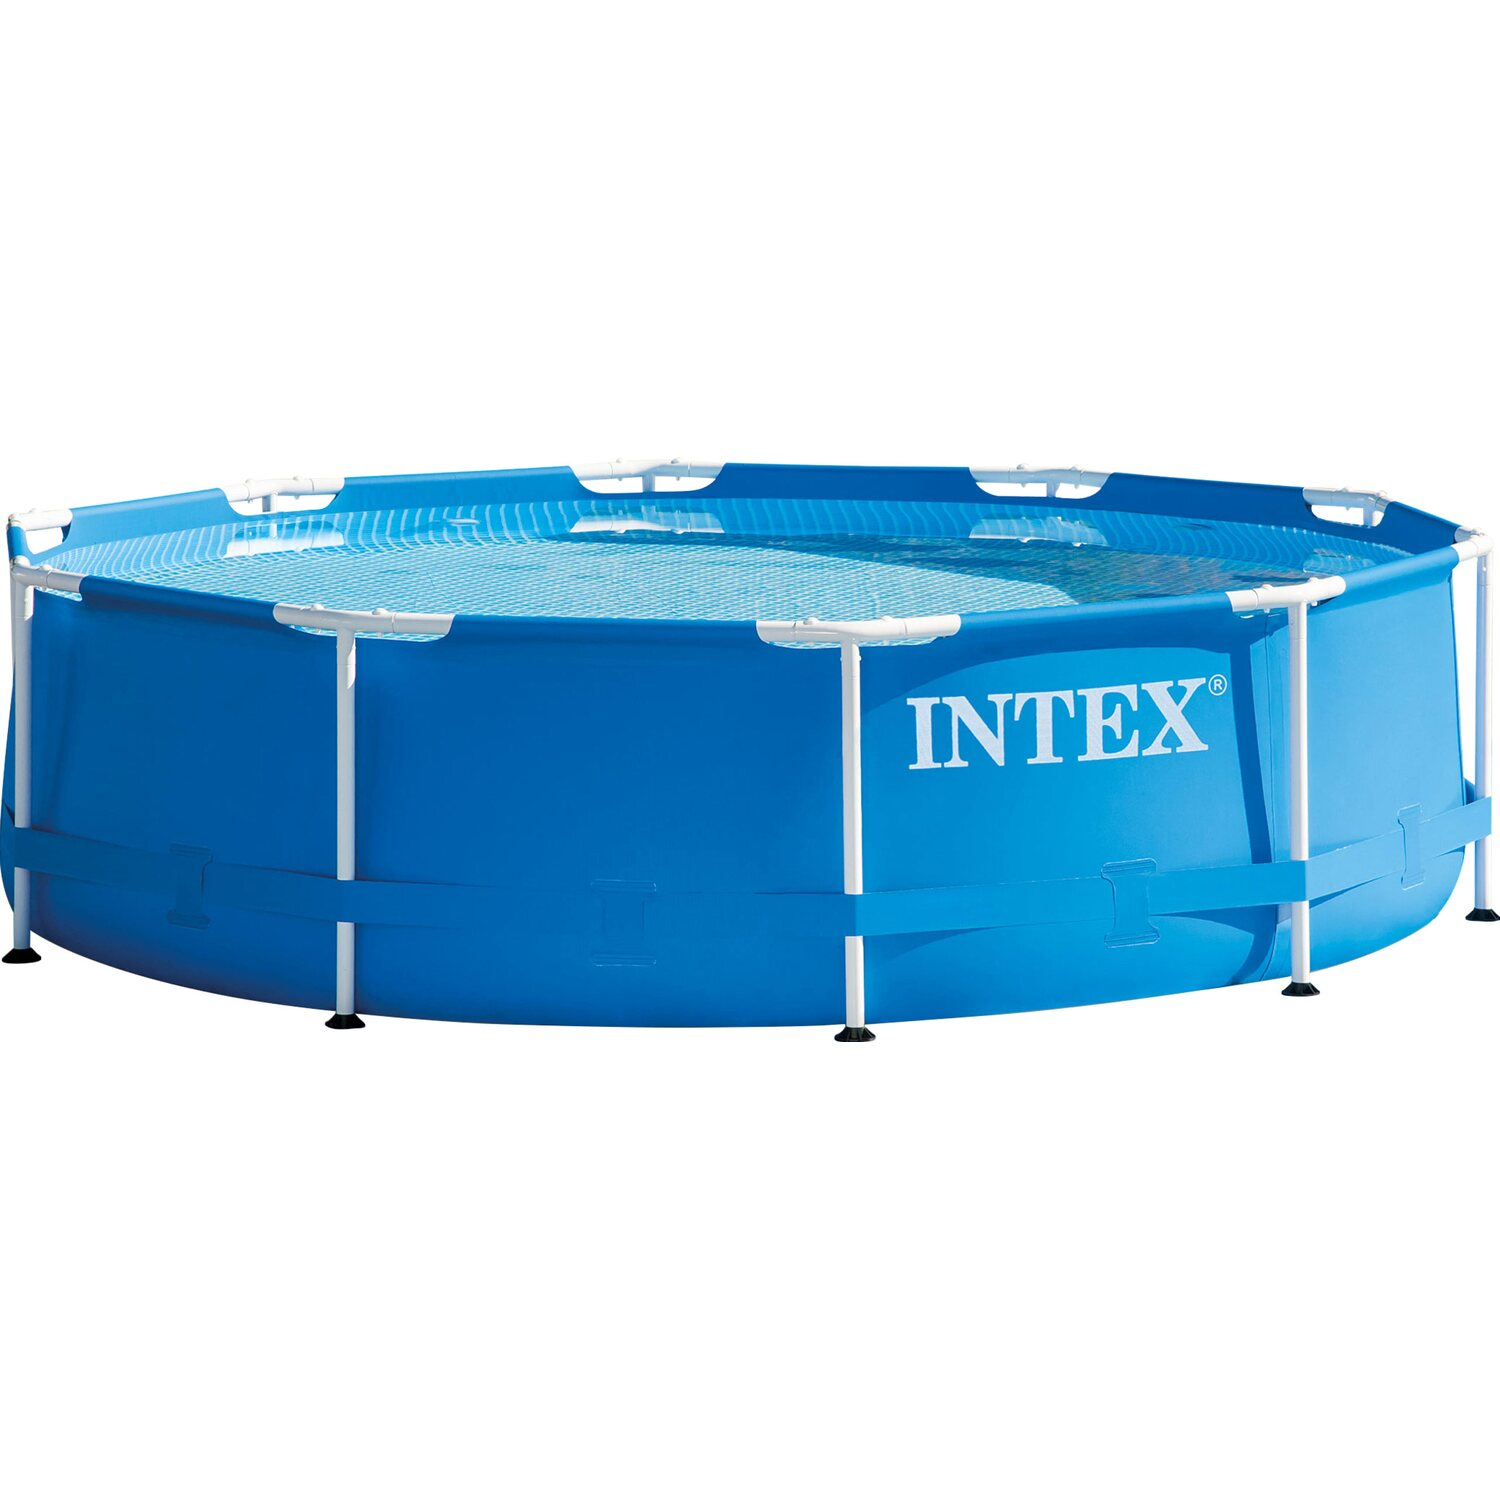 Intex rahmen pool set rondo 366 cm x 76 cm kaufen bei obi for Obi pool set